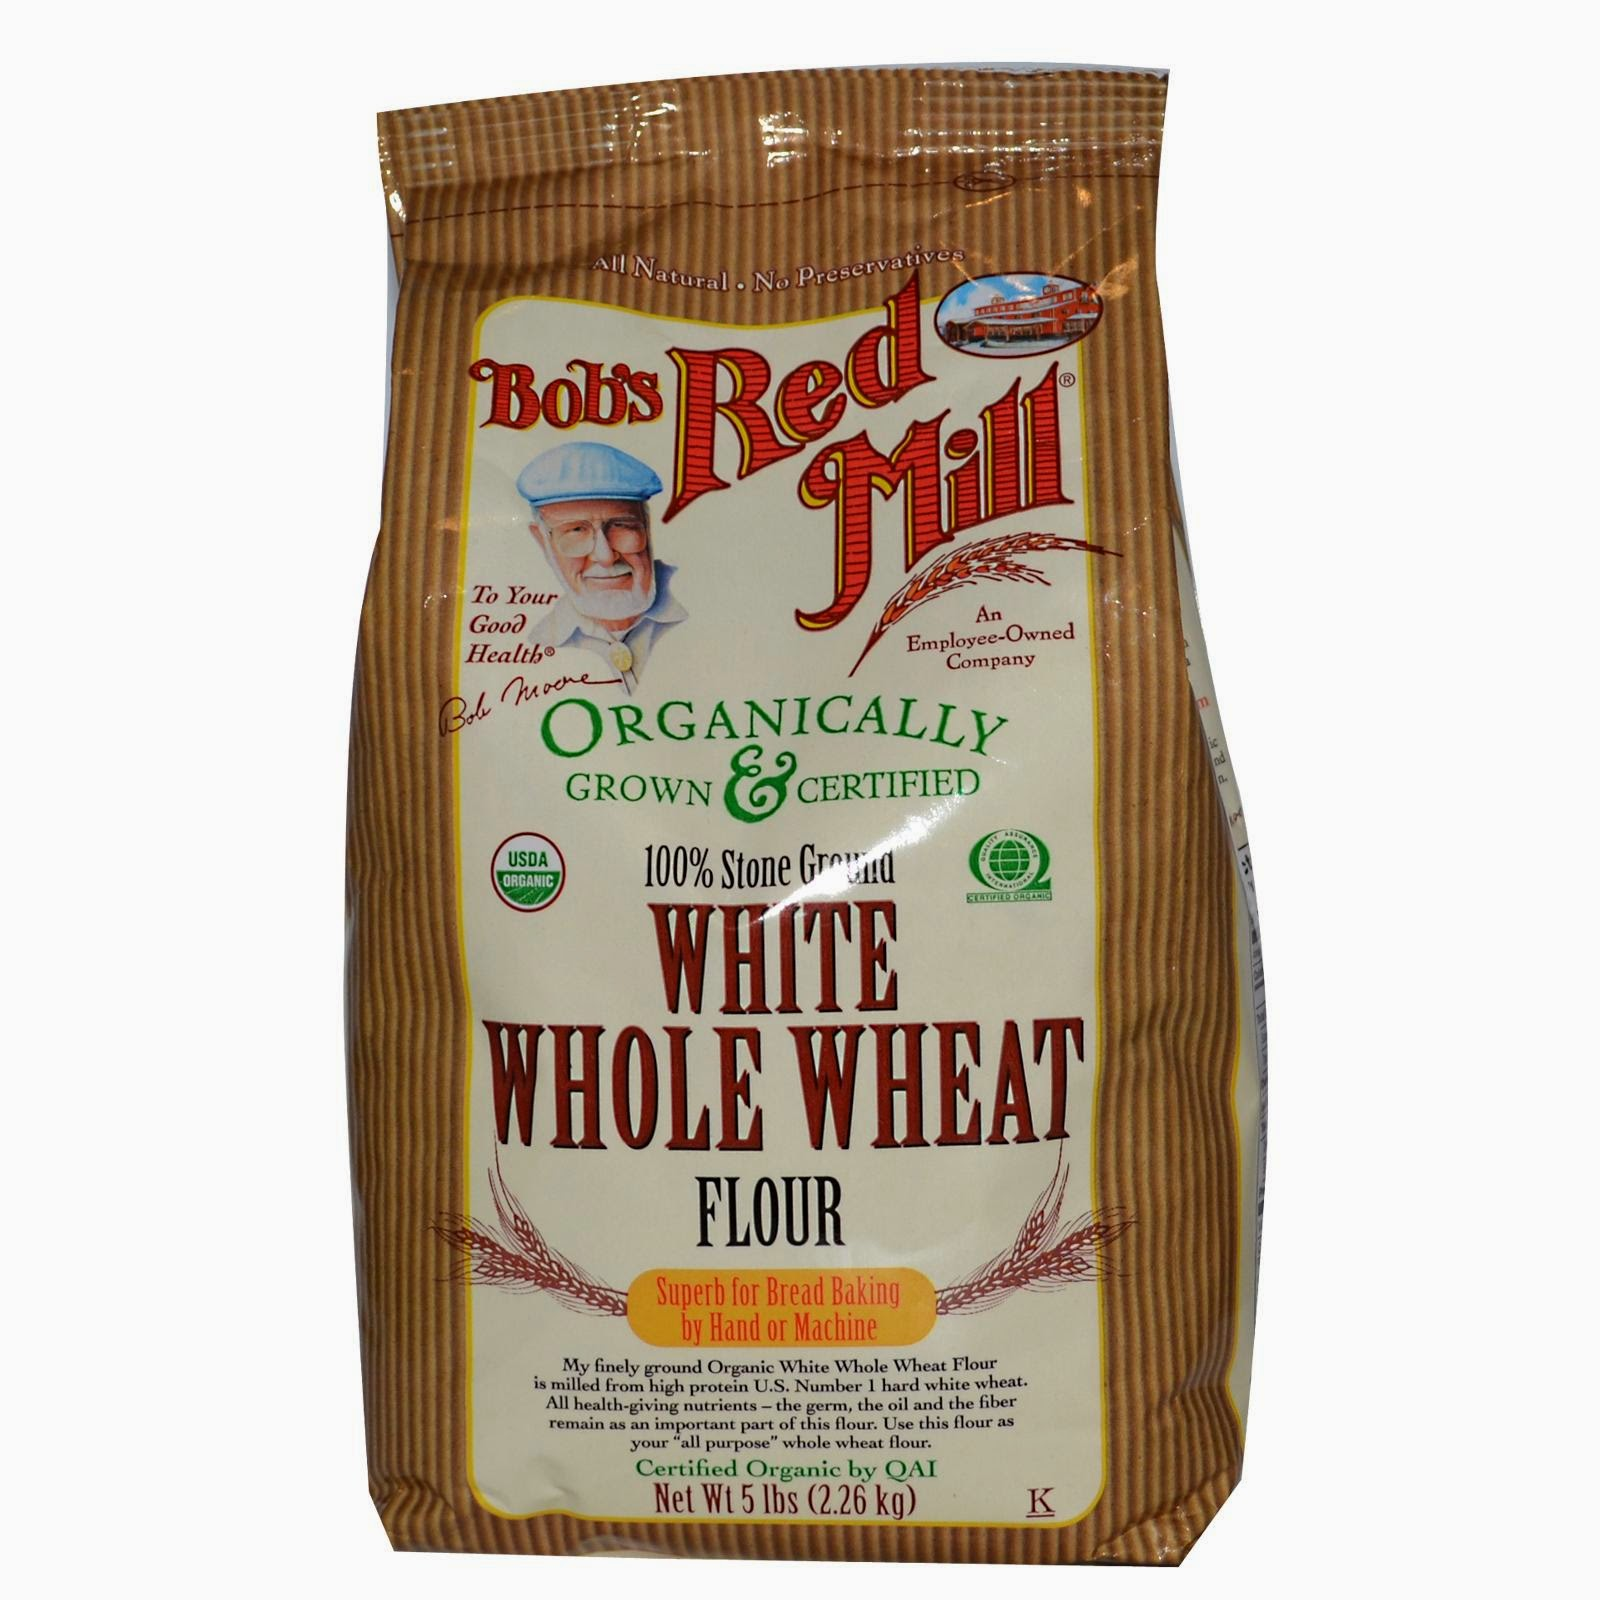 Whole Wheat Flour For The Whole Wheat Pizza Recipe